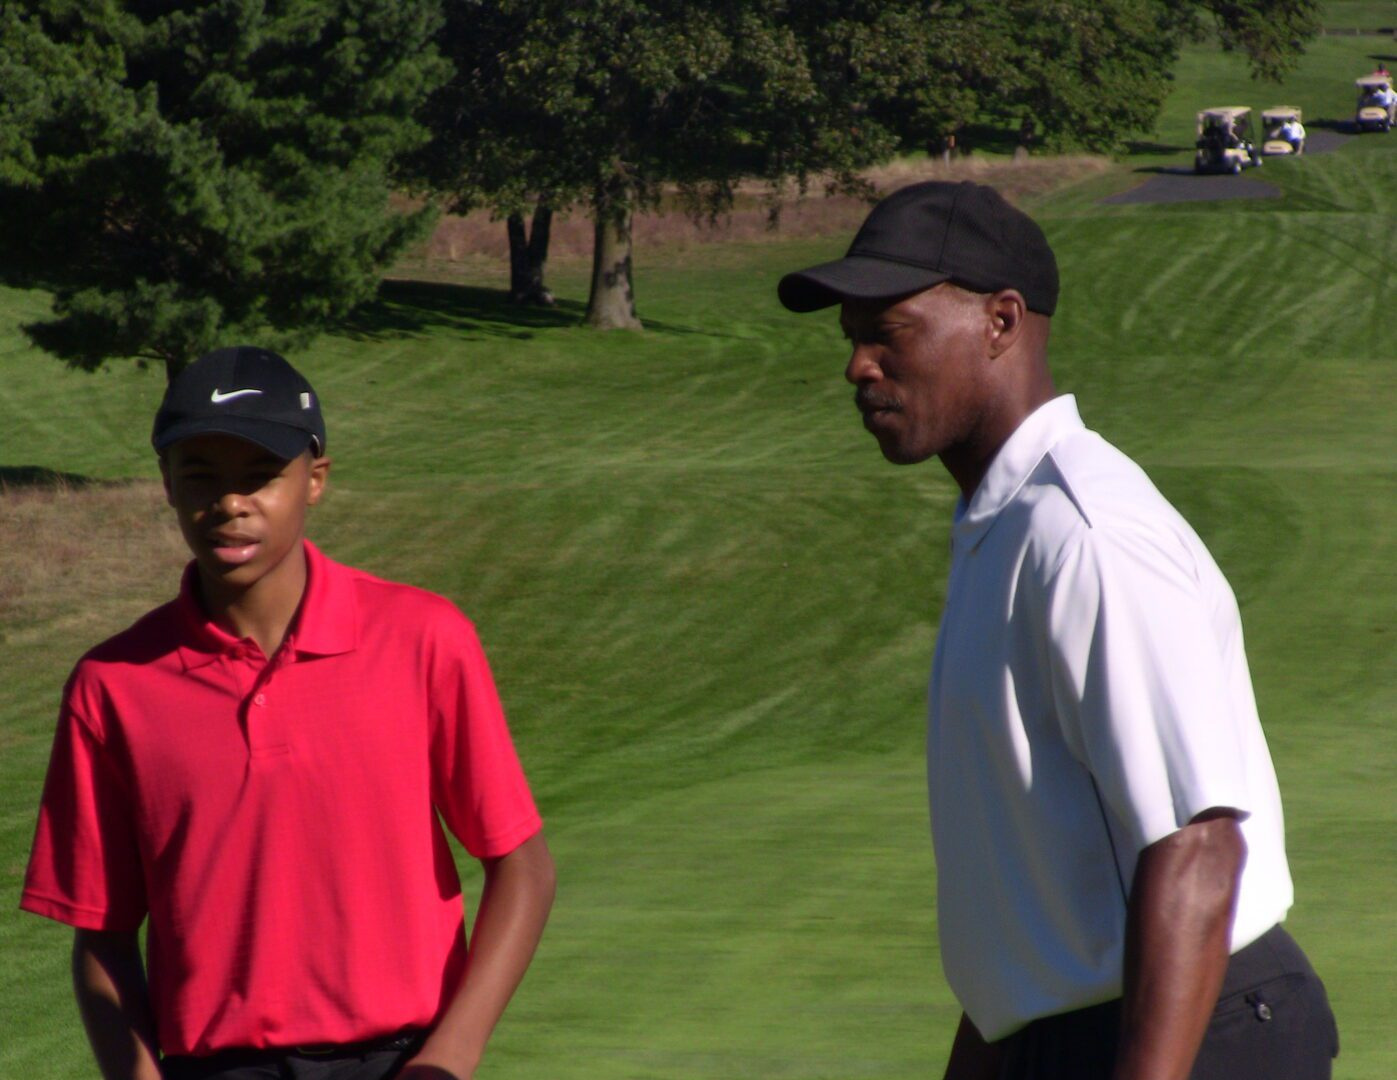 Flex Alexander Celebrity Golf Tournament teams up to raise awareness of Muskegon Family Care and mental health